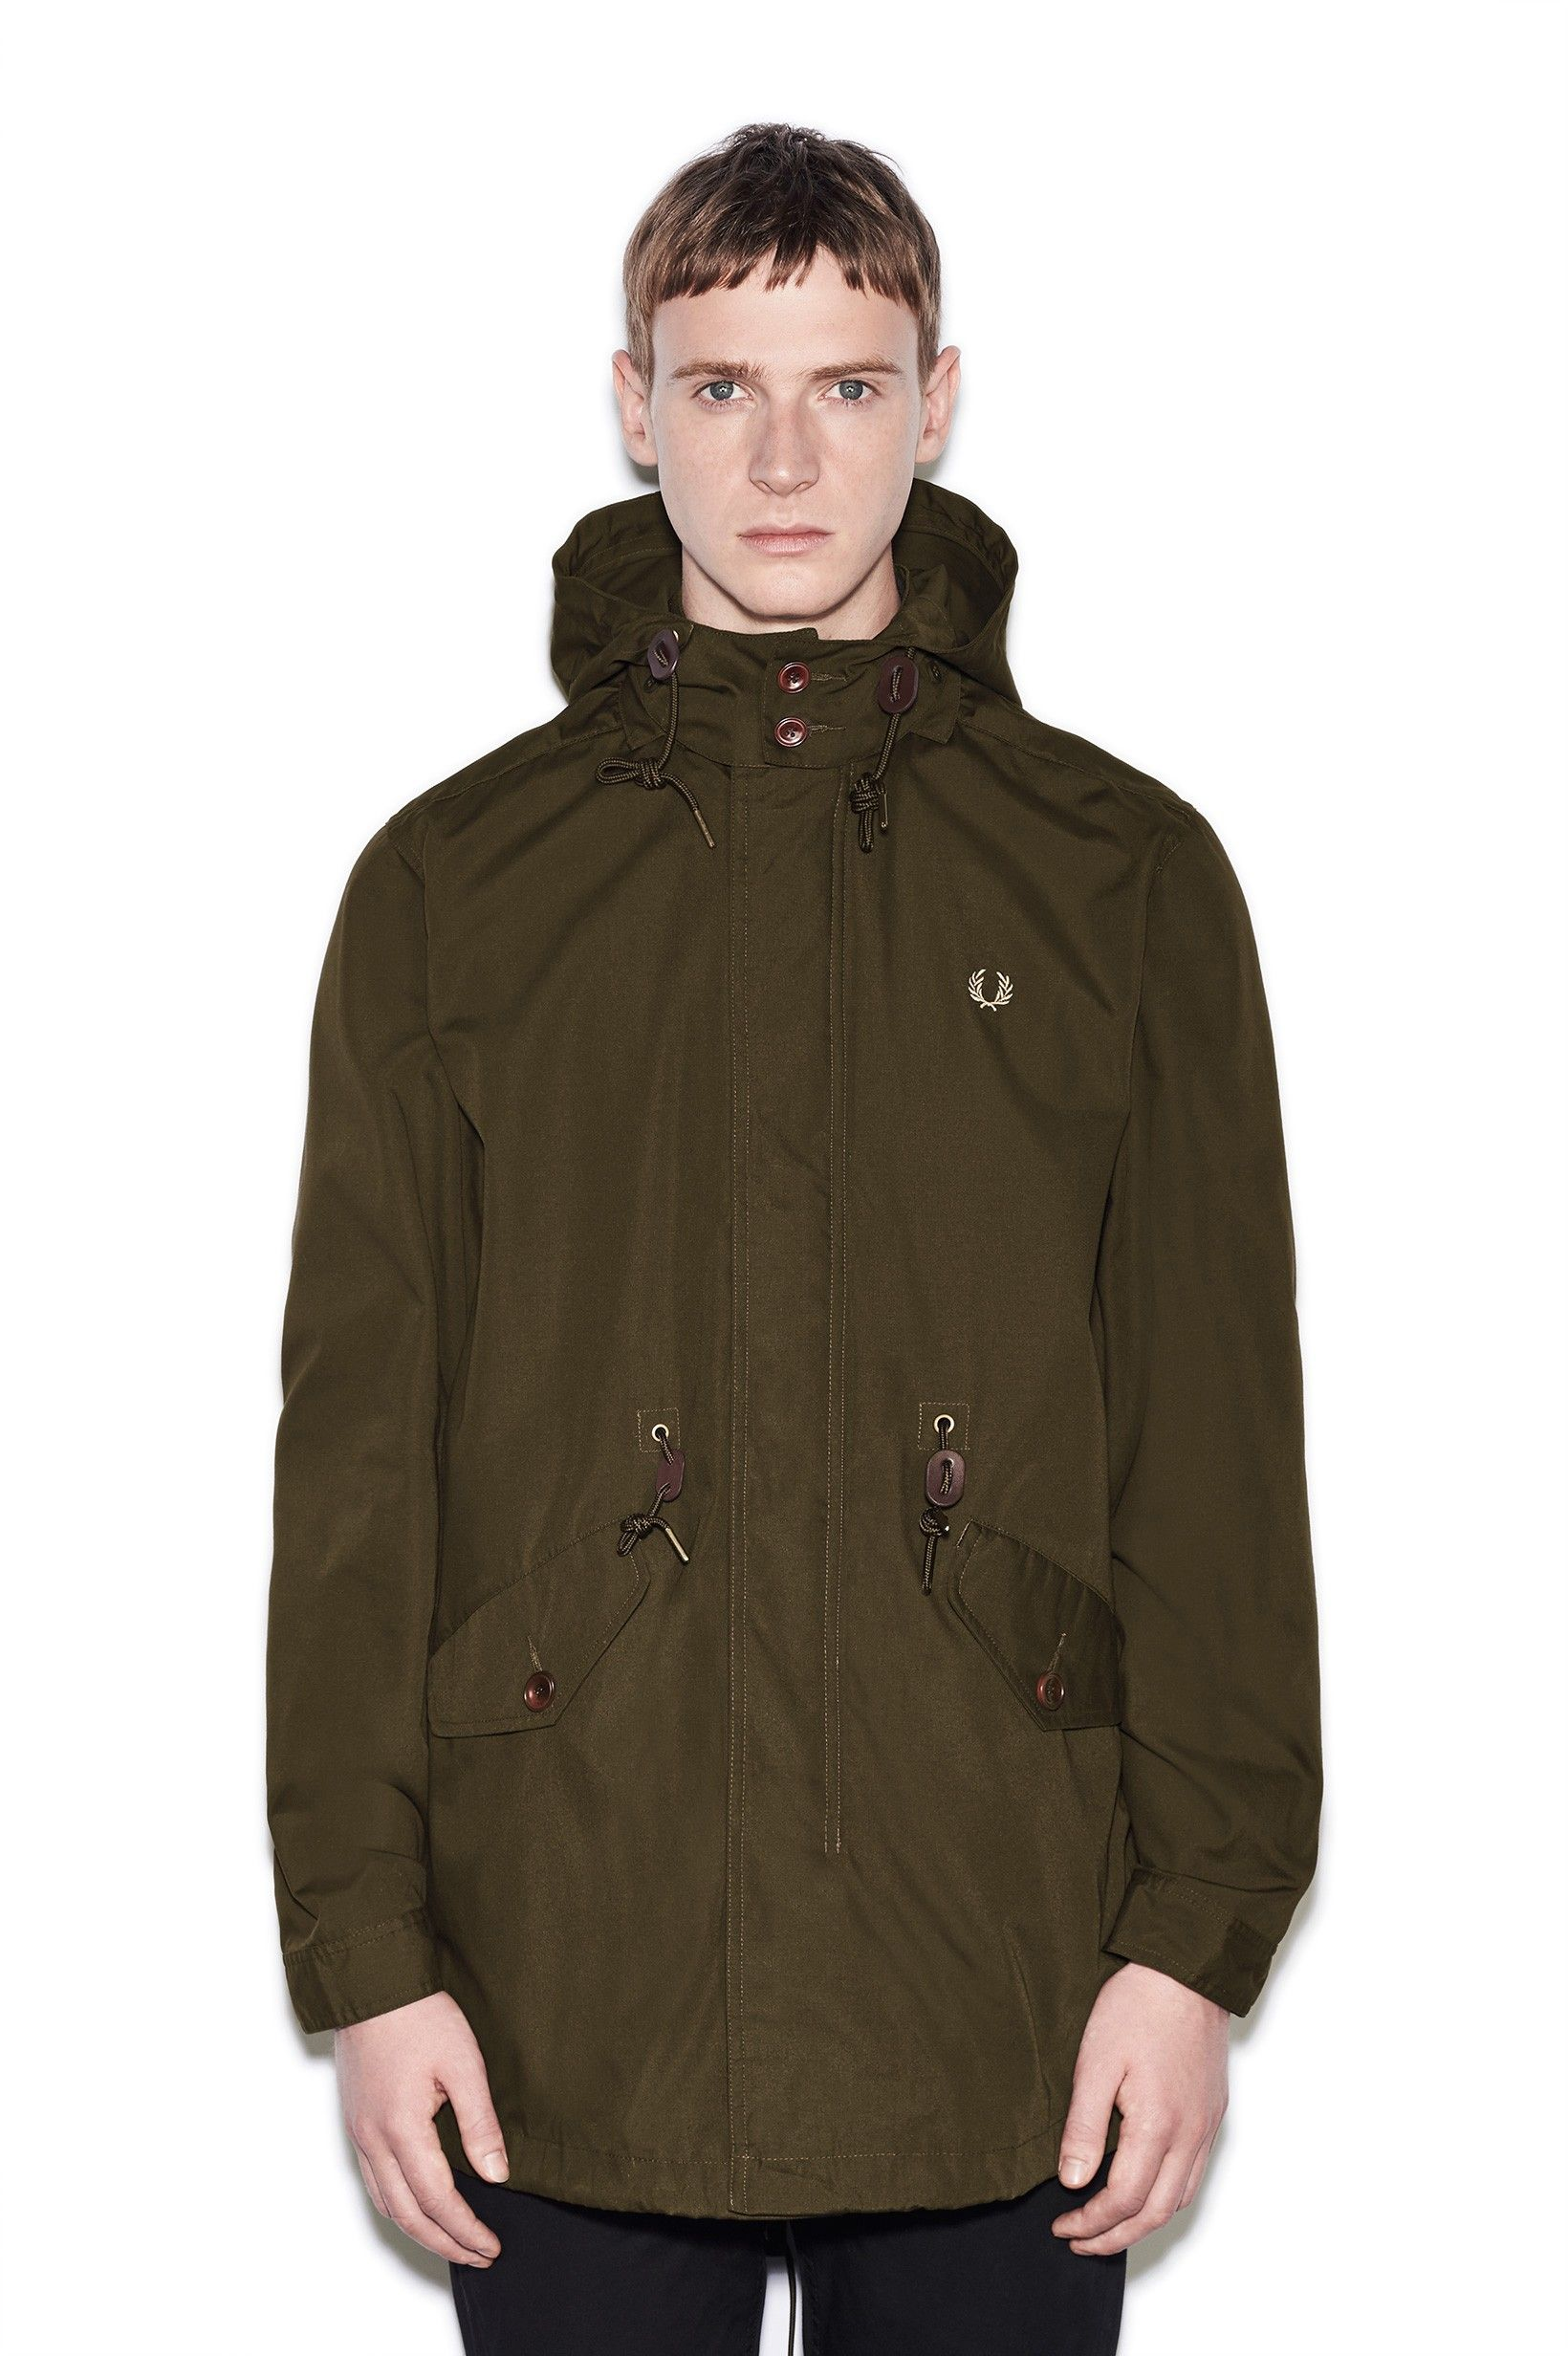 Shop Coats & Jackets from the Men's Fred Perry Collection.